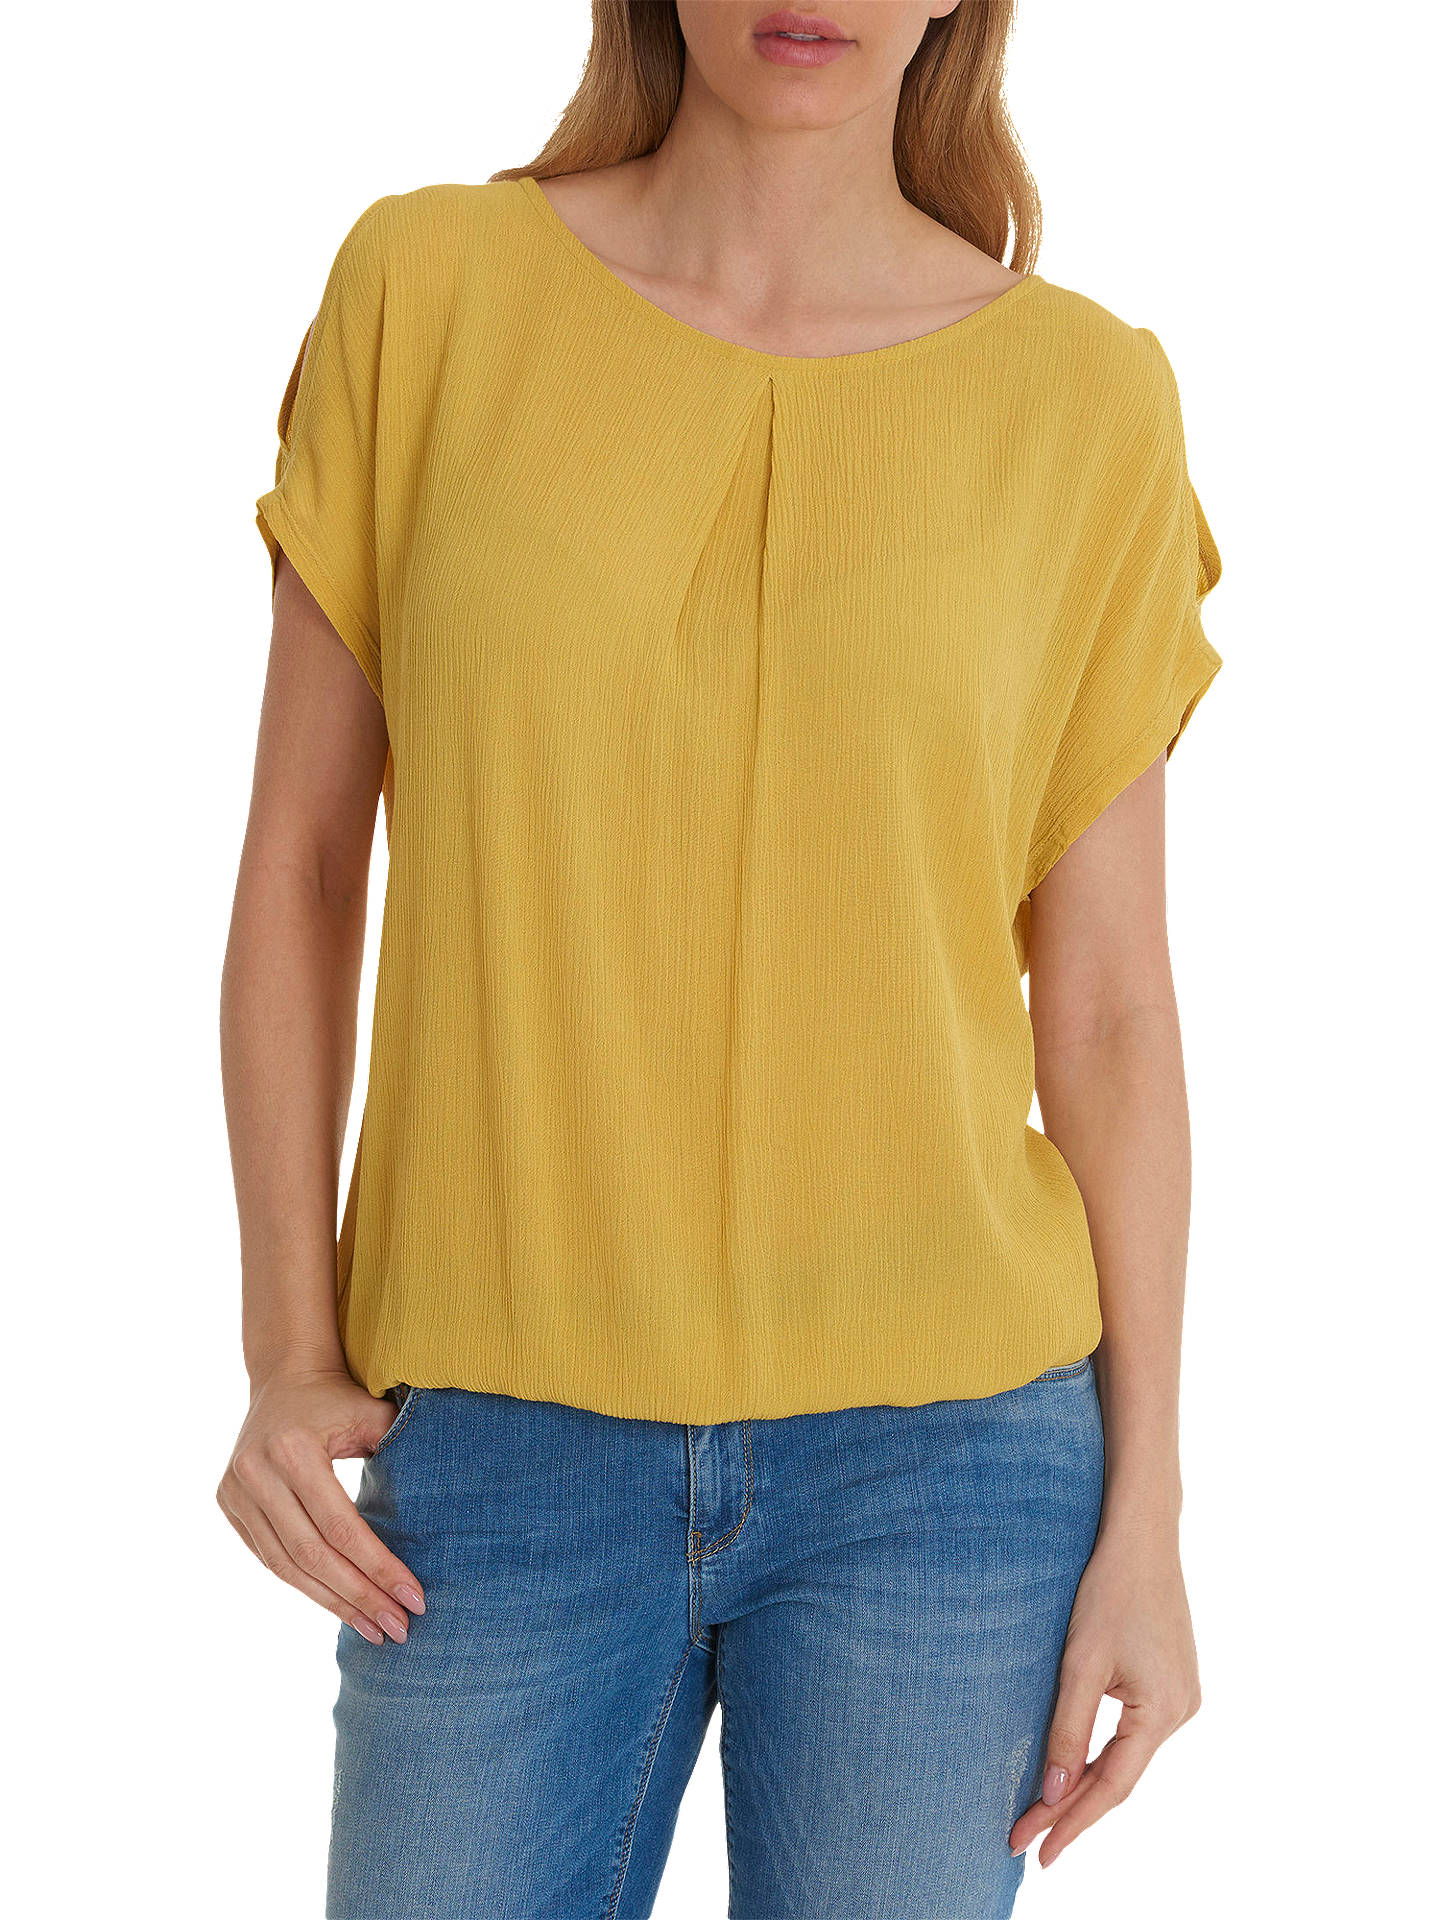 Buy Betty Barclay Textured Blouse, Golden Corn, L Online at johnlewis.com